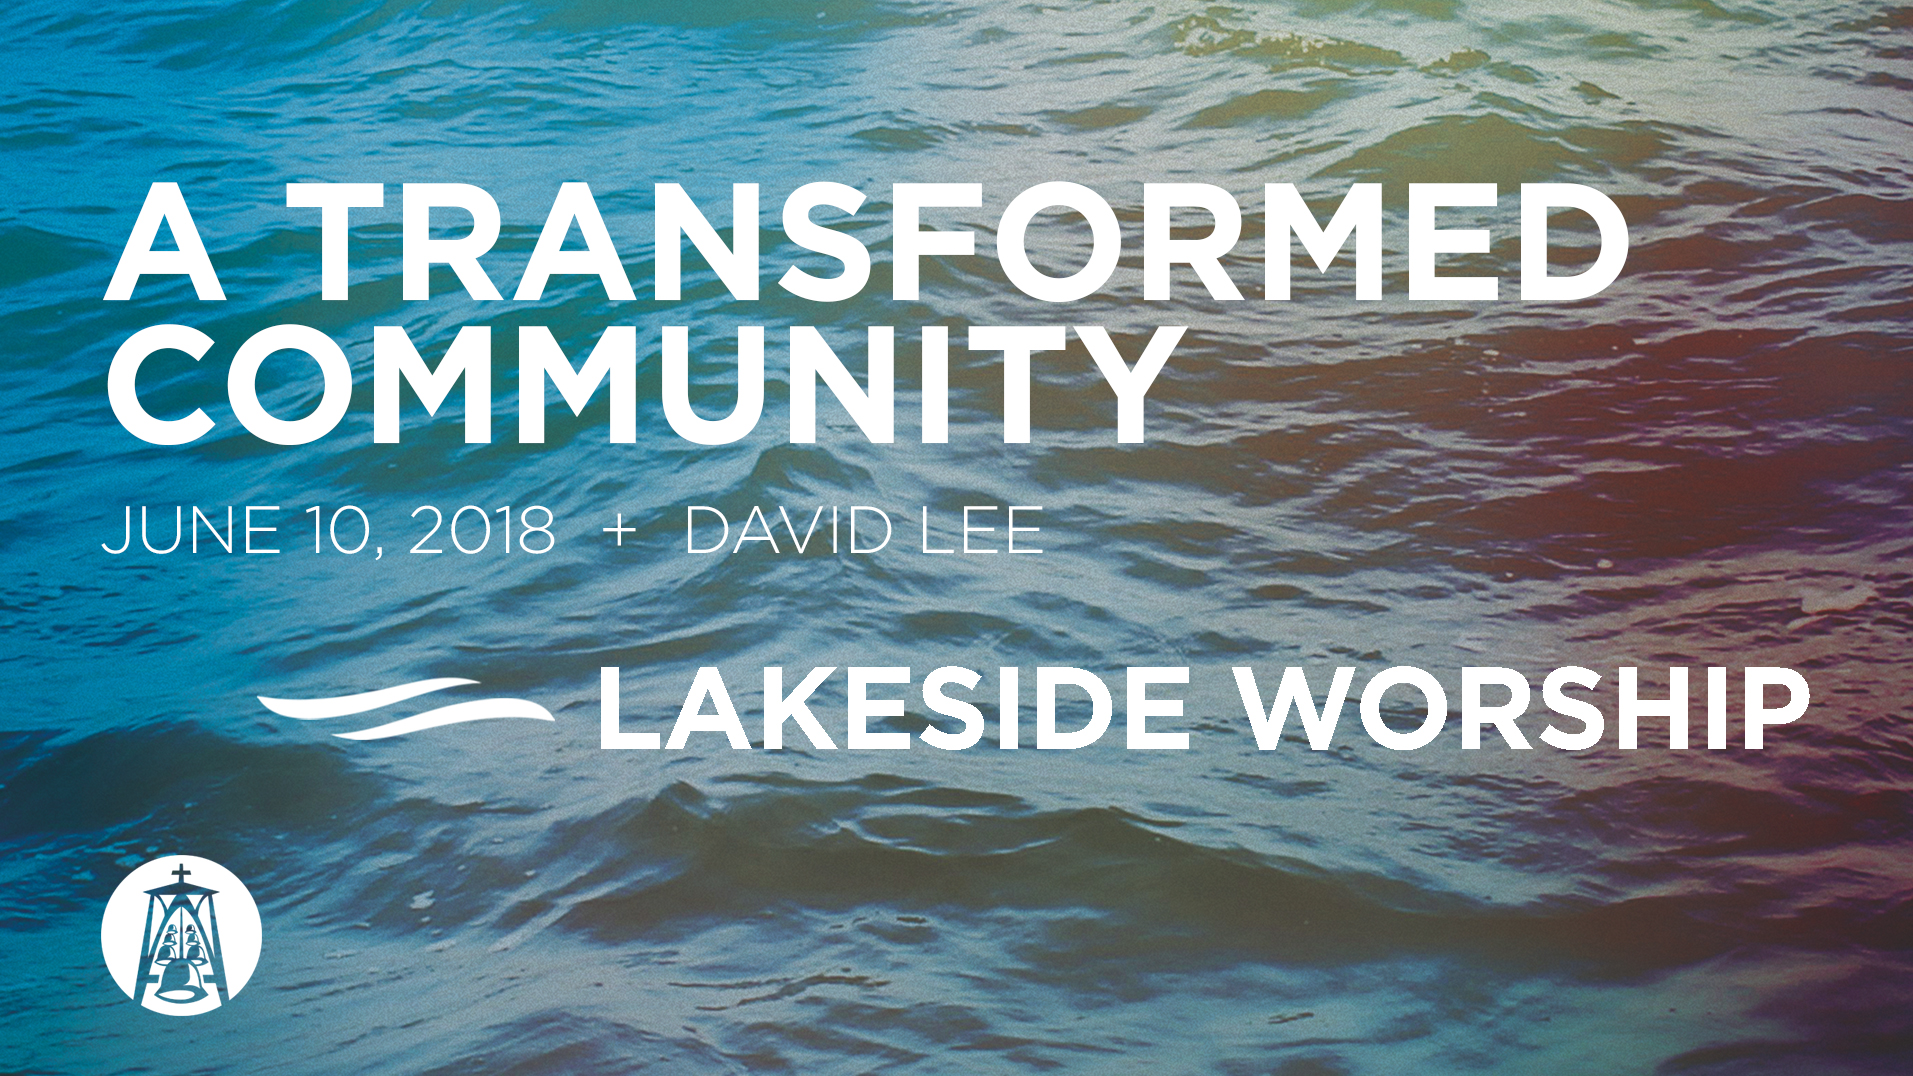 thumb_lakesideworship_06102018.jpg